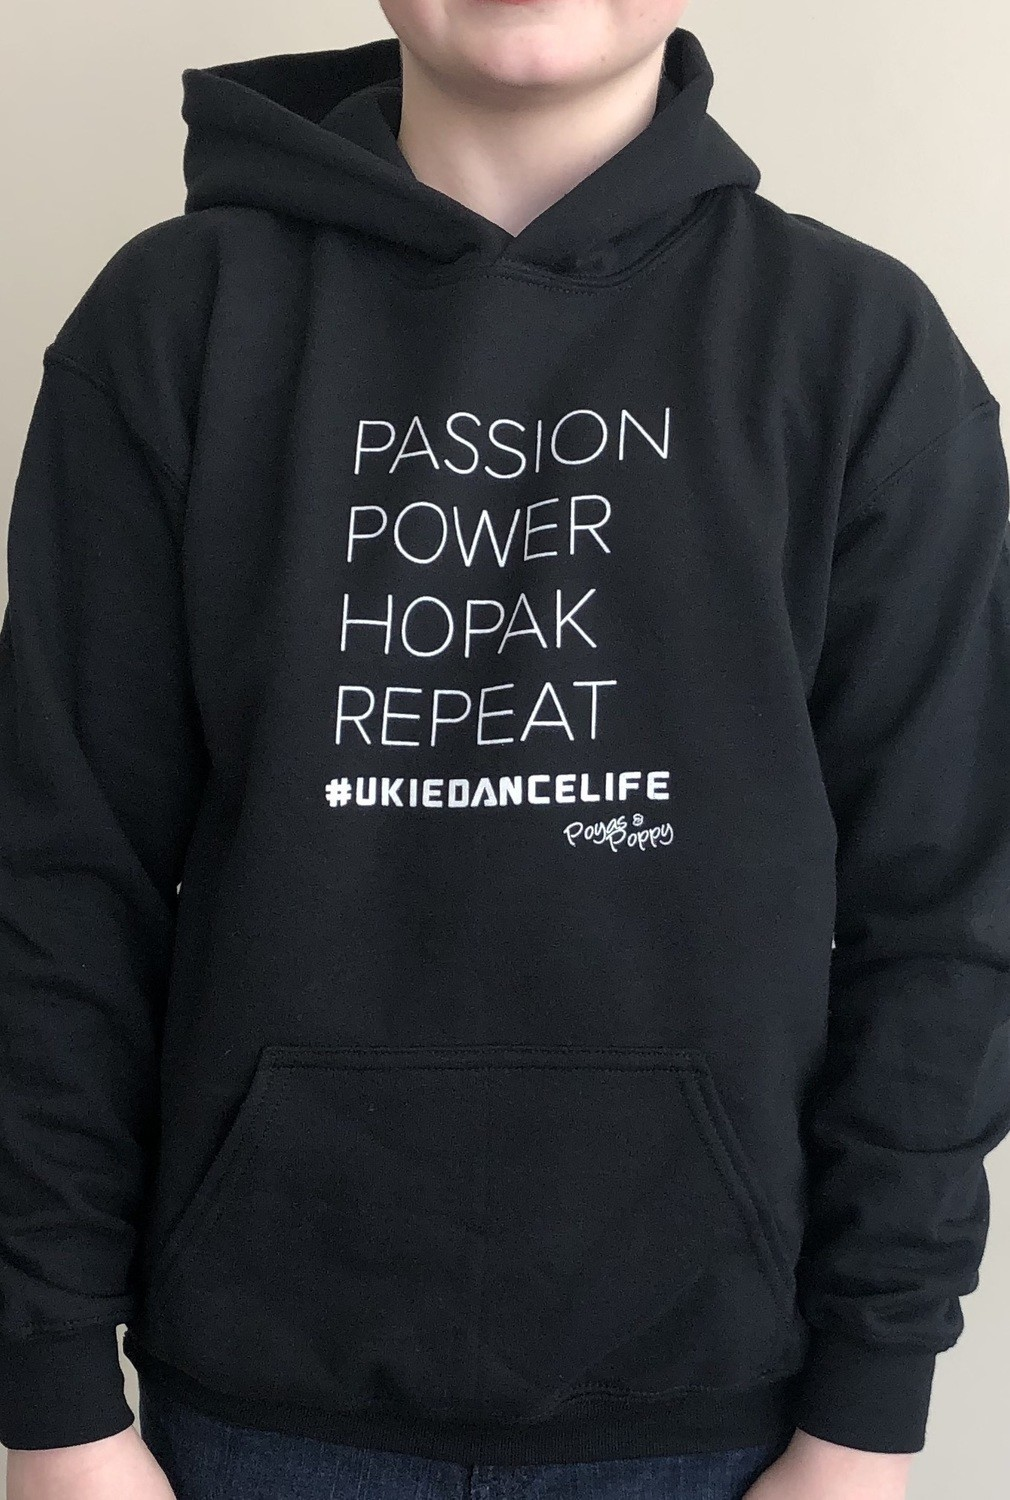 Passion Power Hopak Repeat Youth Hoodie